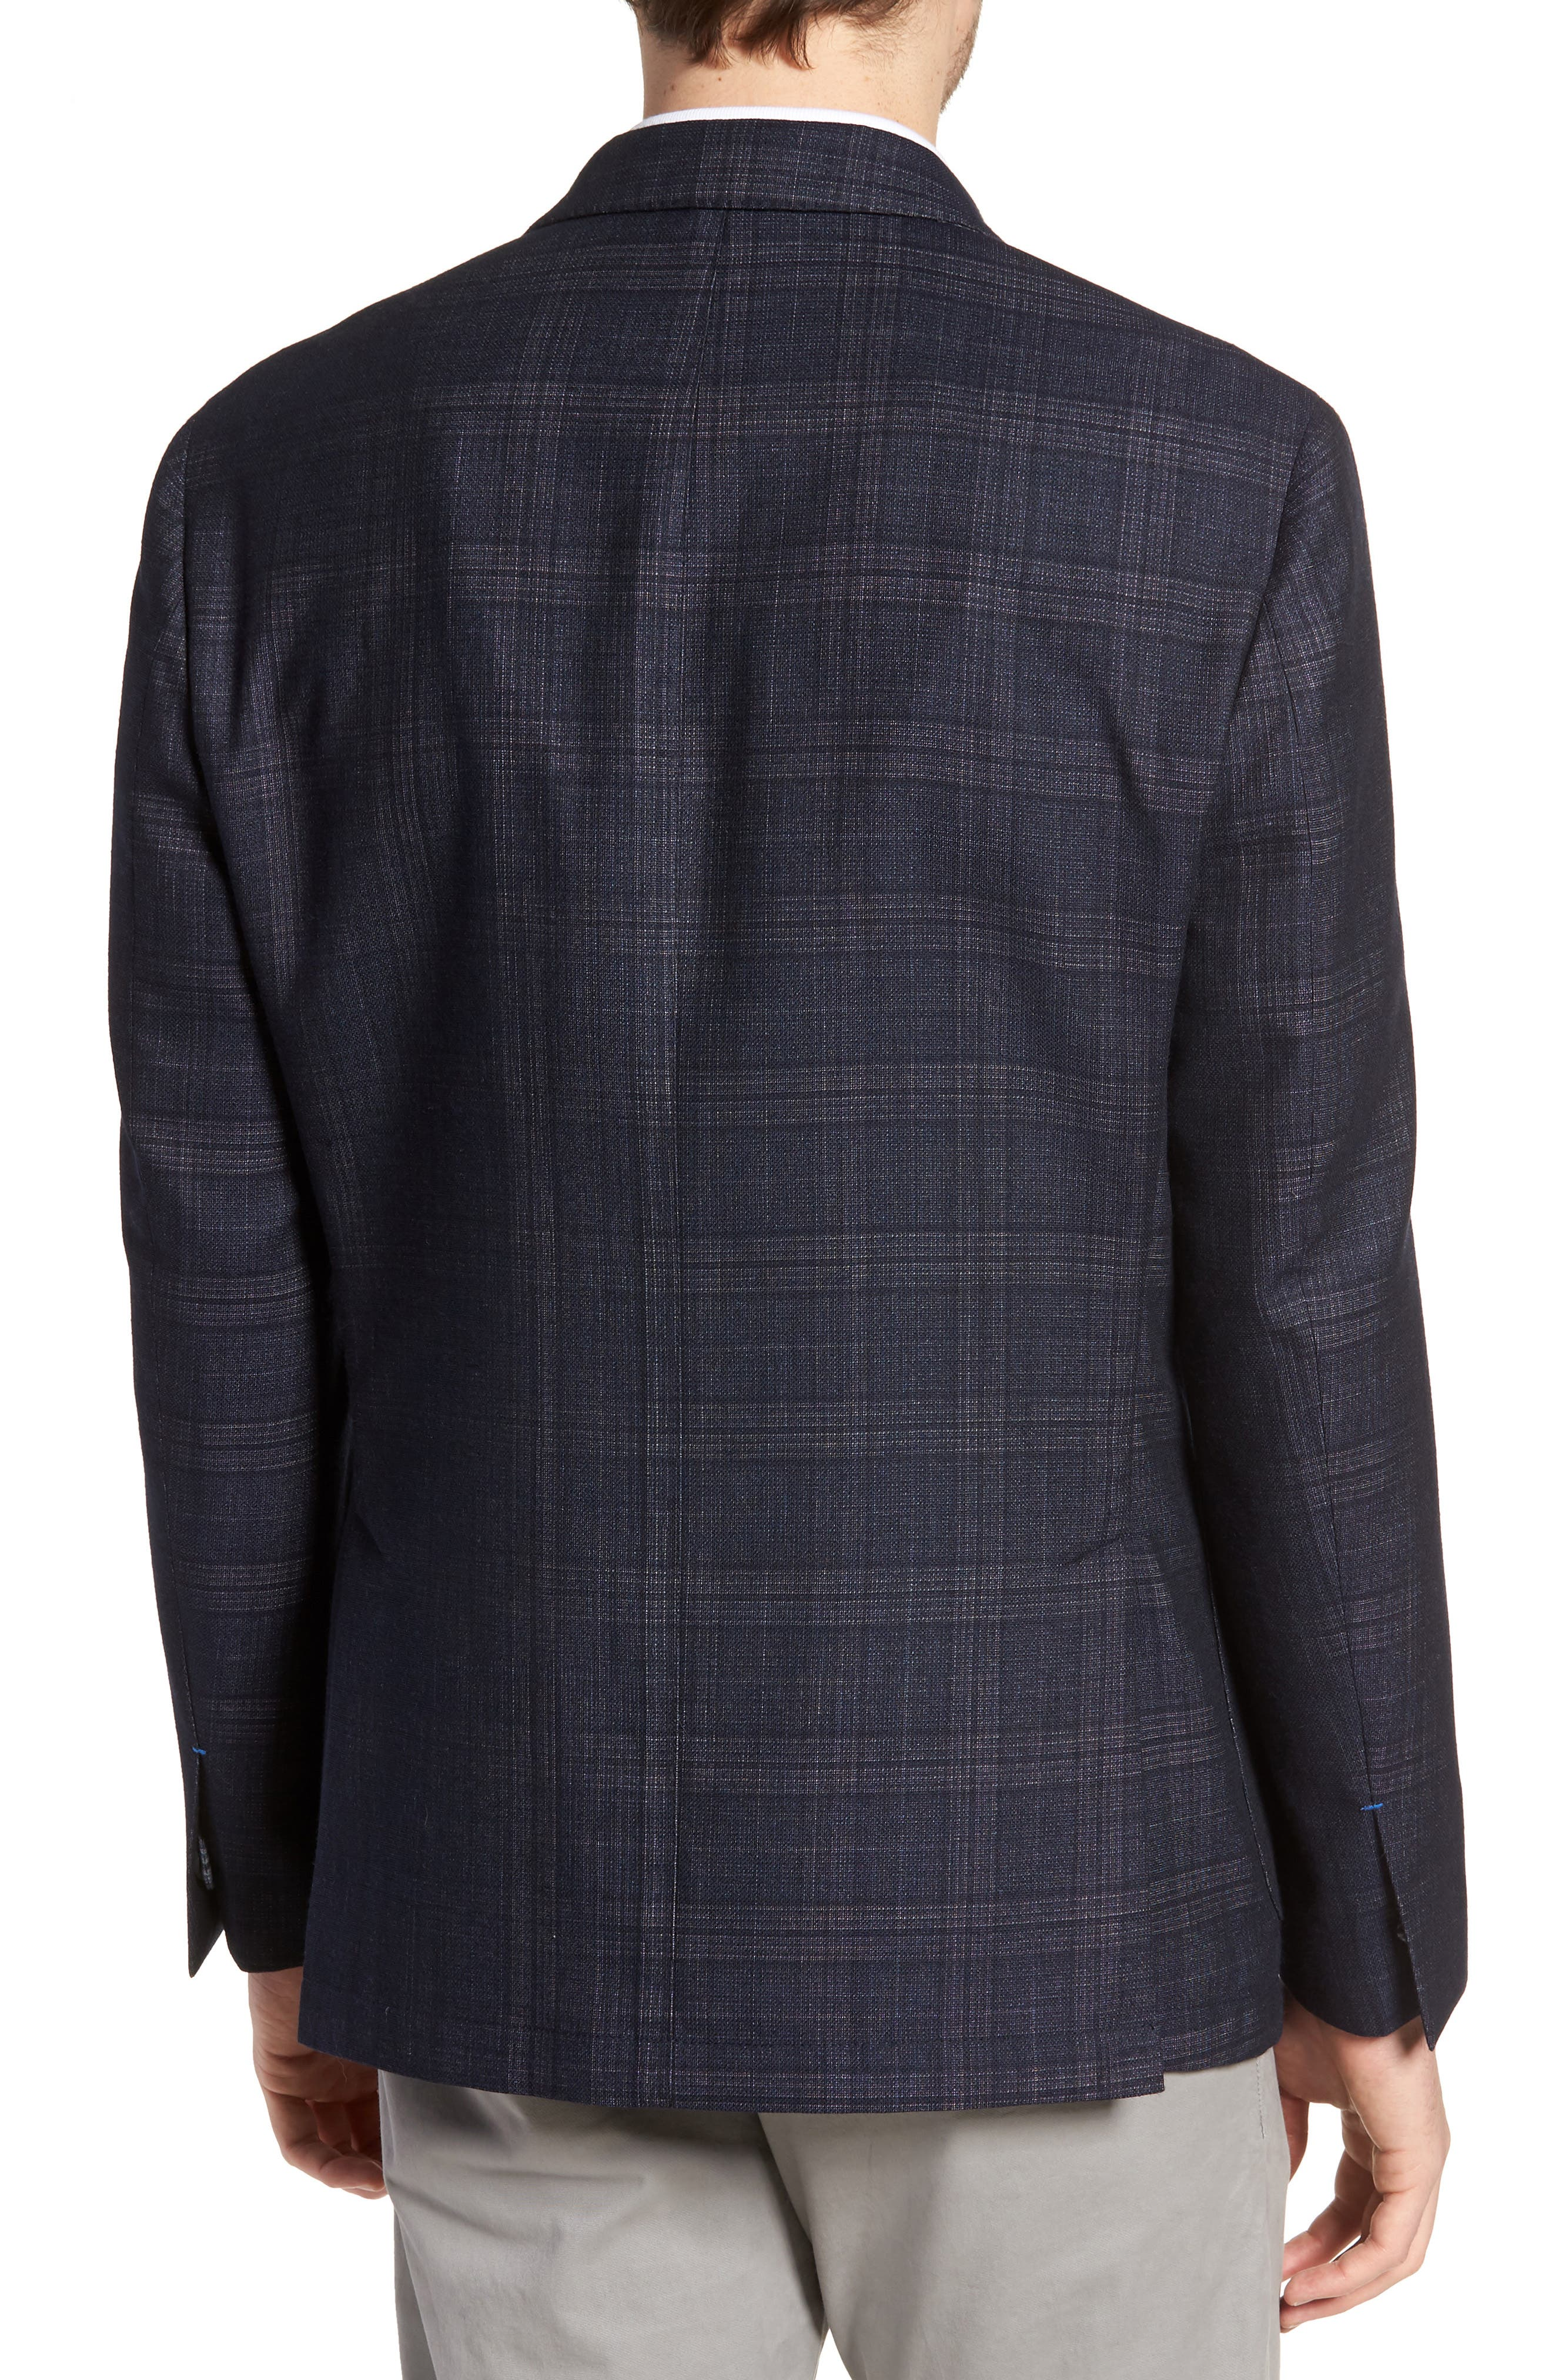 VINCE CAMUTO,                             Dell Aria Unconstructed Sport Coat,                             Alternate thumbnail 2, color,                             NAVY GRIN THRU